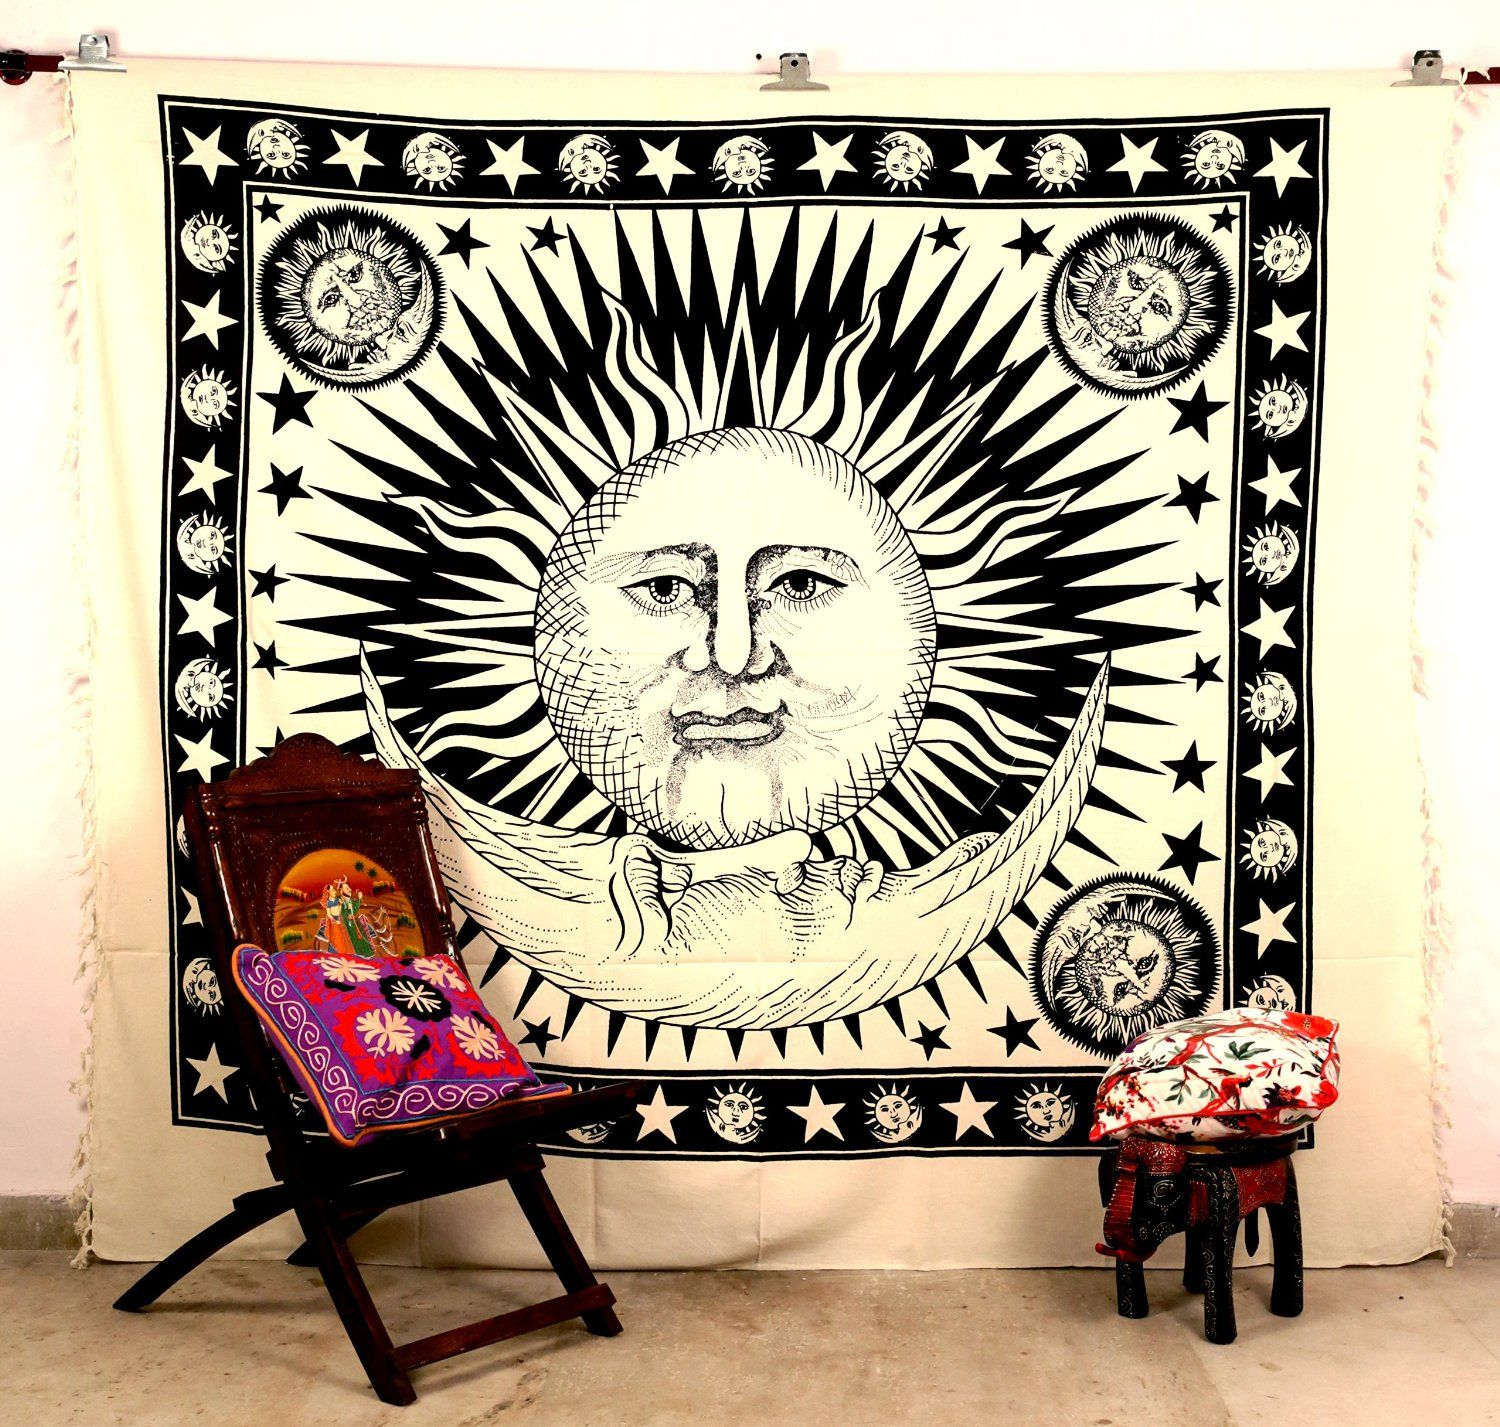 How To Hang A Tapestry On The Wall indian sun moon #wall #hanging #hippy tribal #tapestry